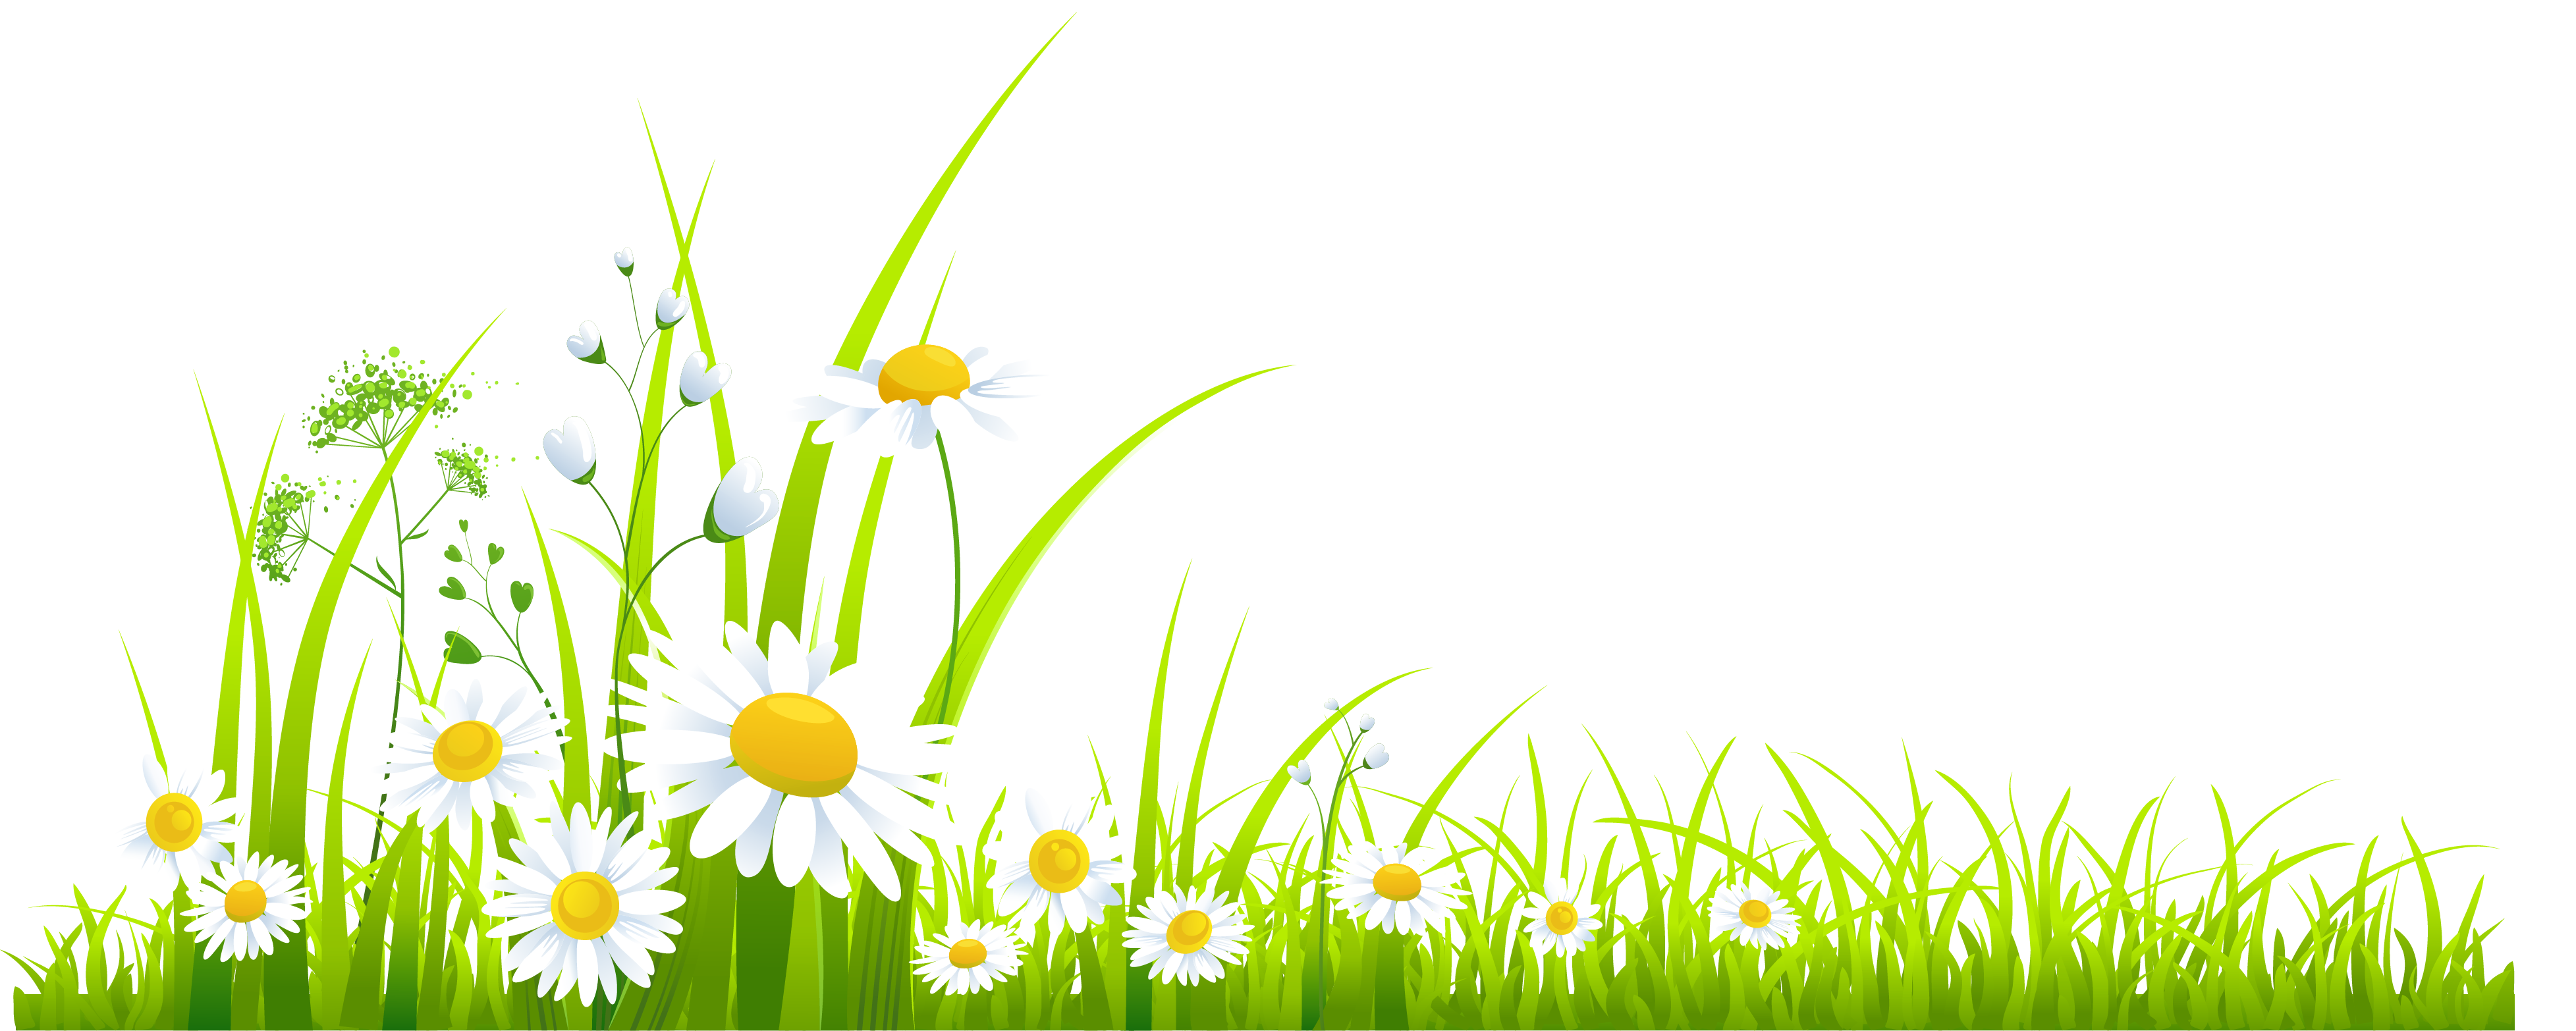 Spring Grass Clipart Flowers Pinterest Clip Art Spring And Grass